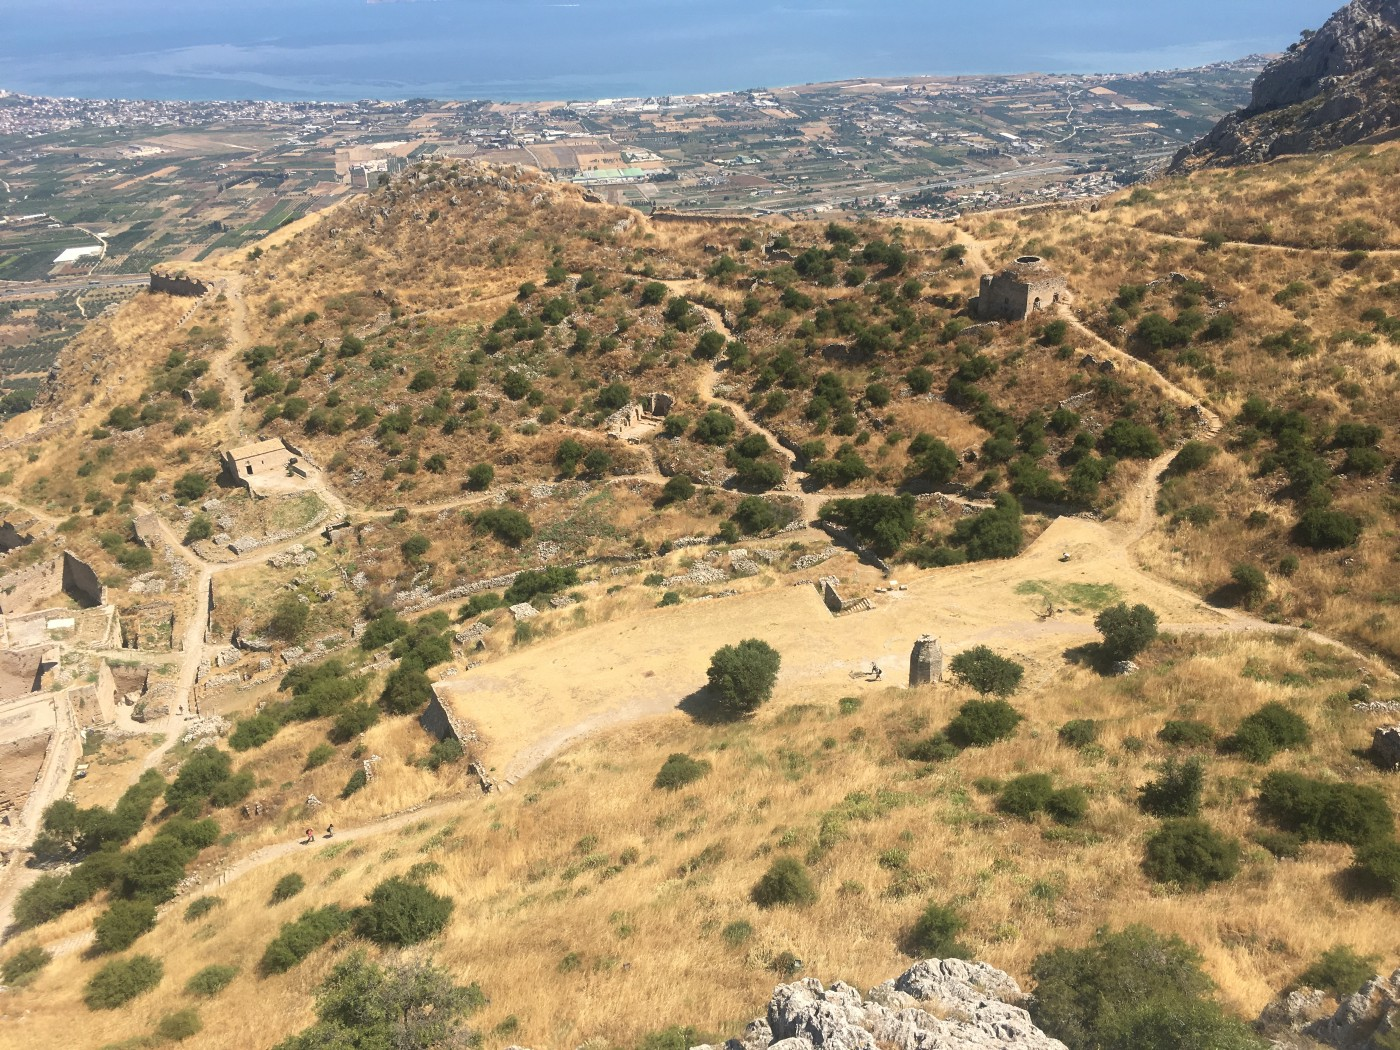 A view of Ancient Corinth and the Gulf of Corinth from atop the mountain Acrocorinth